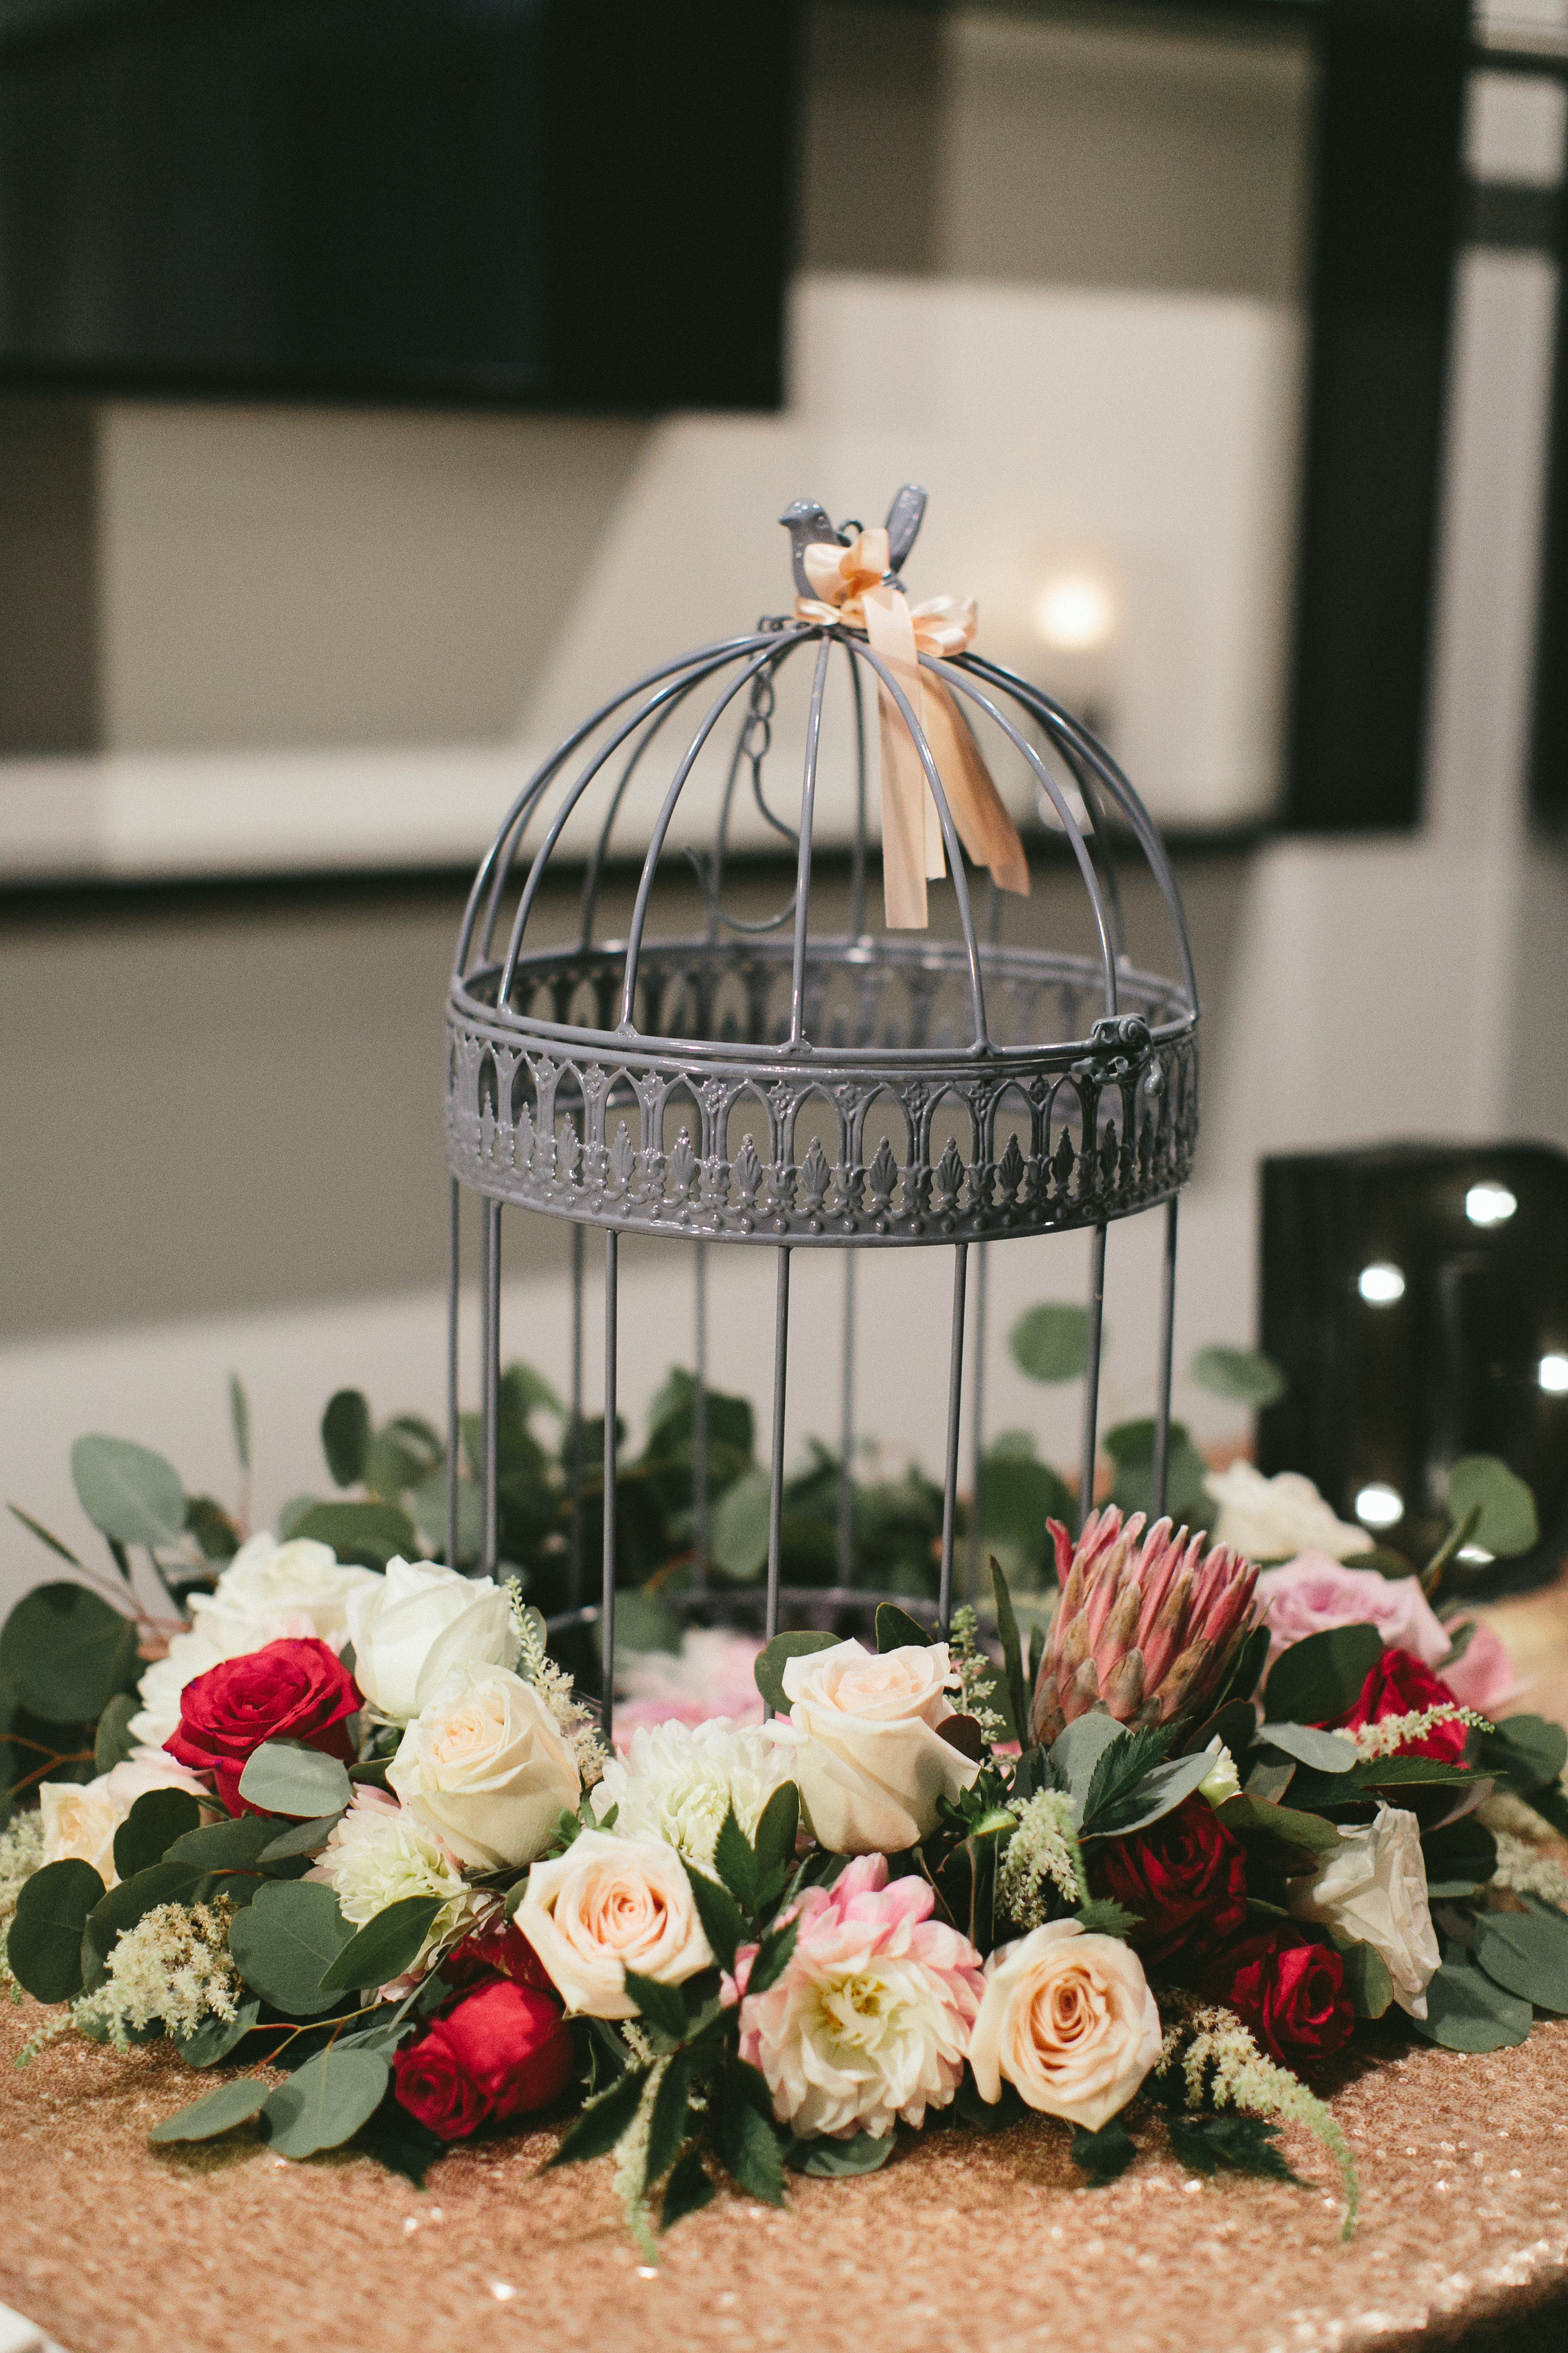 Sophisticated Garden-Inspired Wedding in Toronto at the Grand Luxe - Birdcage with flowers